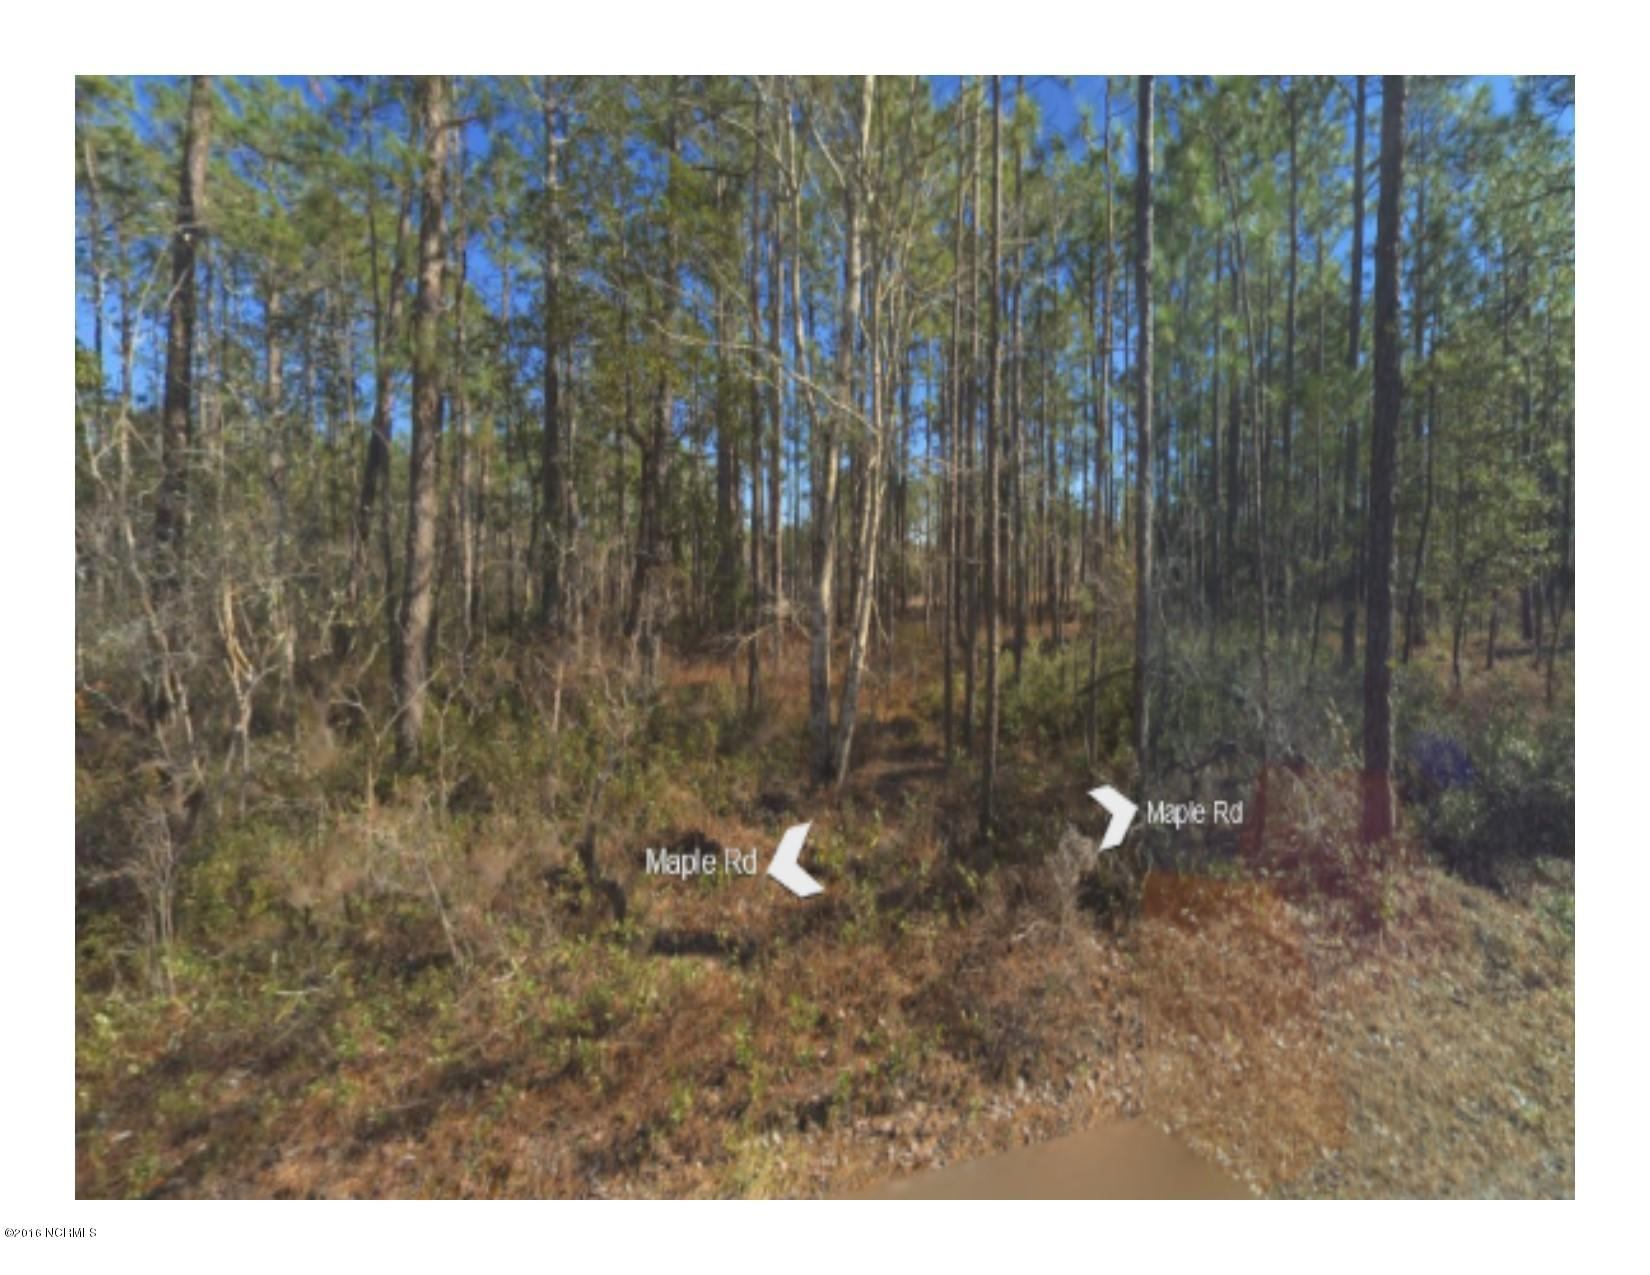 1160 Maple Road, Southport, North Carolina 28461, ,Residential land,For sale,Maple,100018018